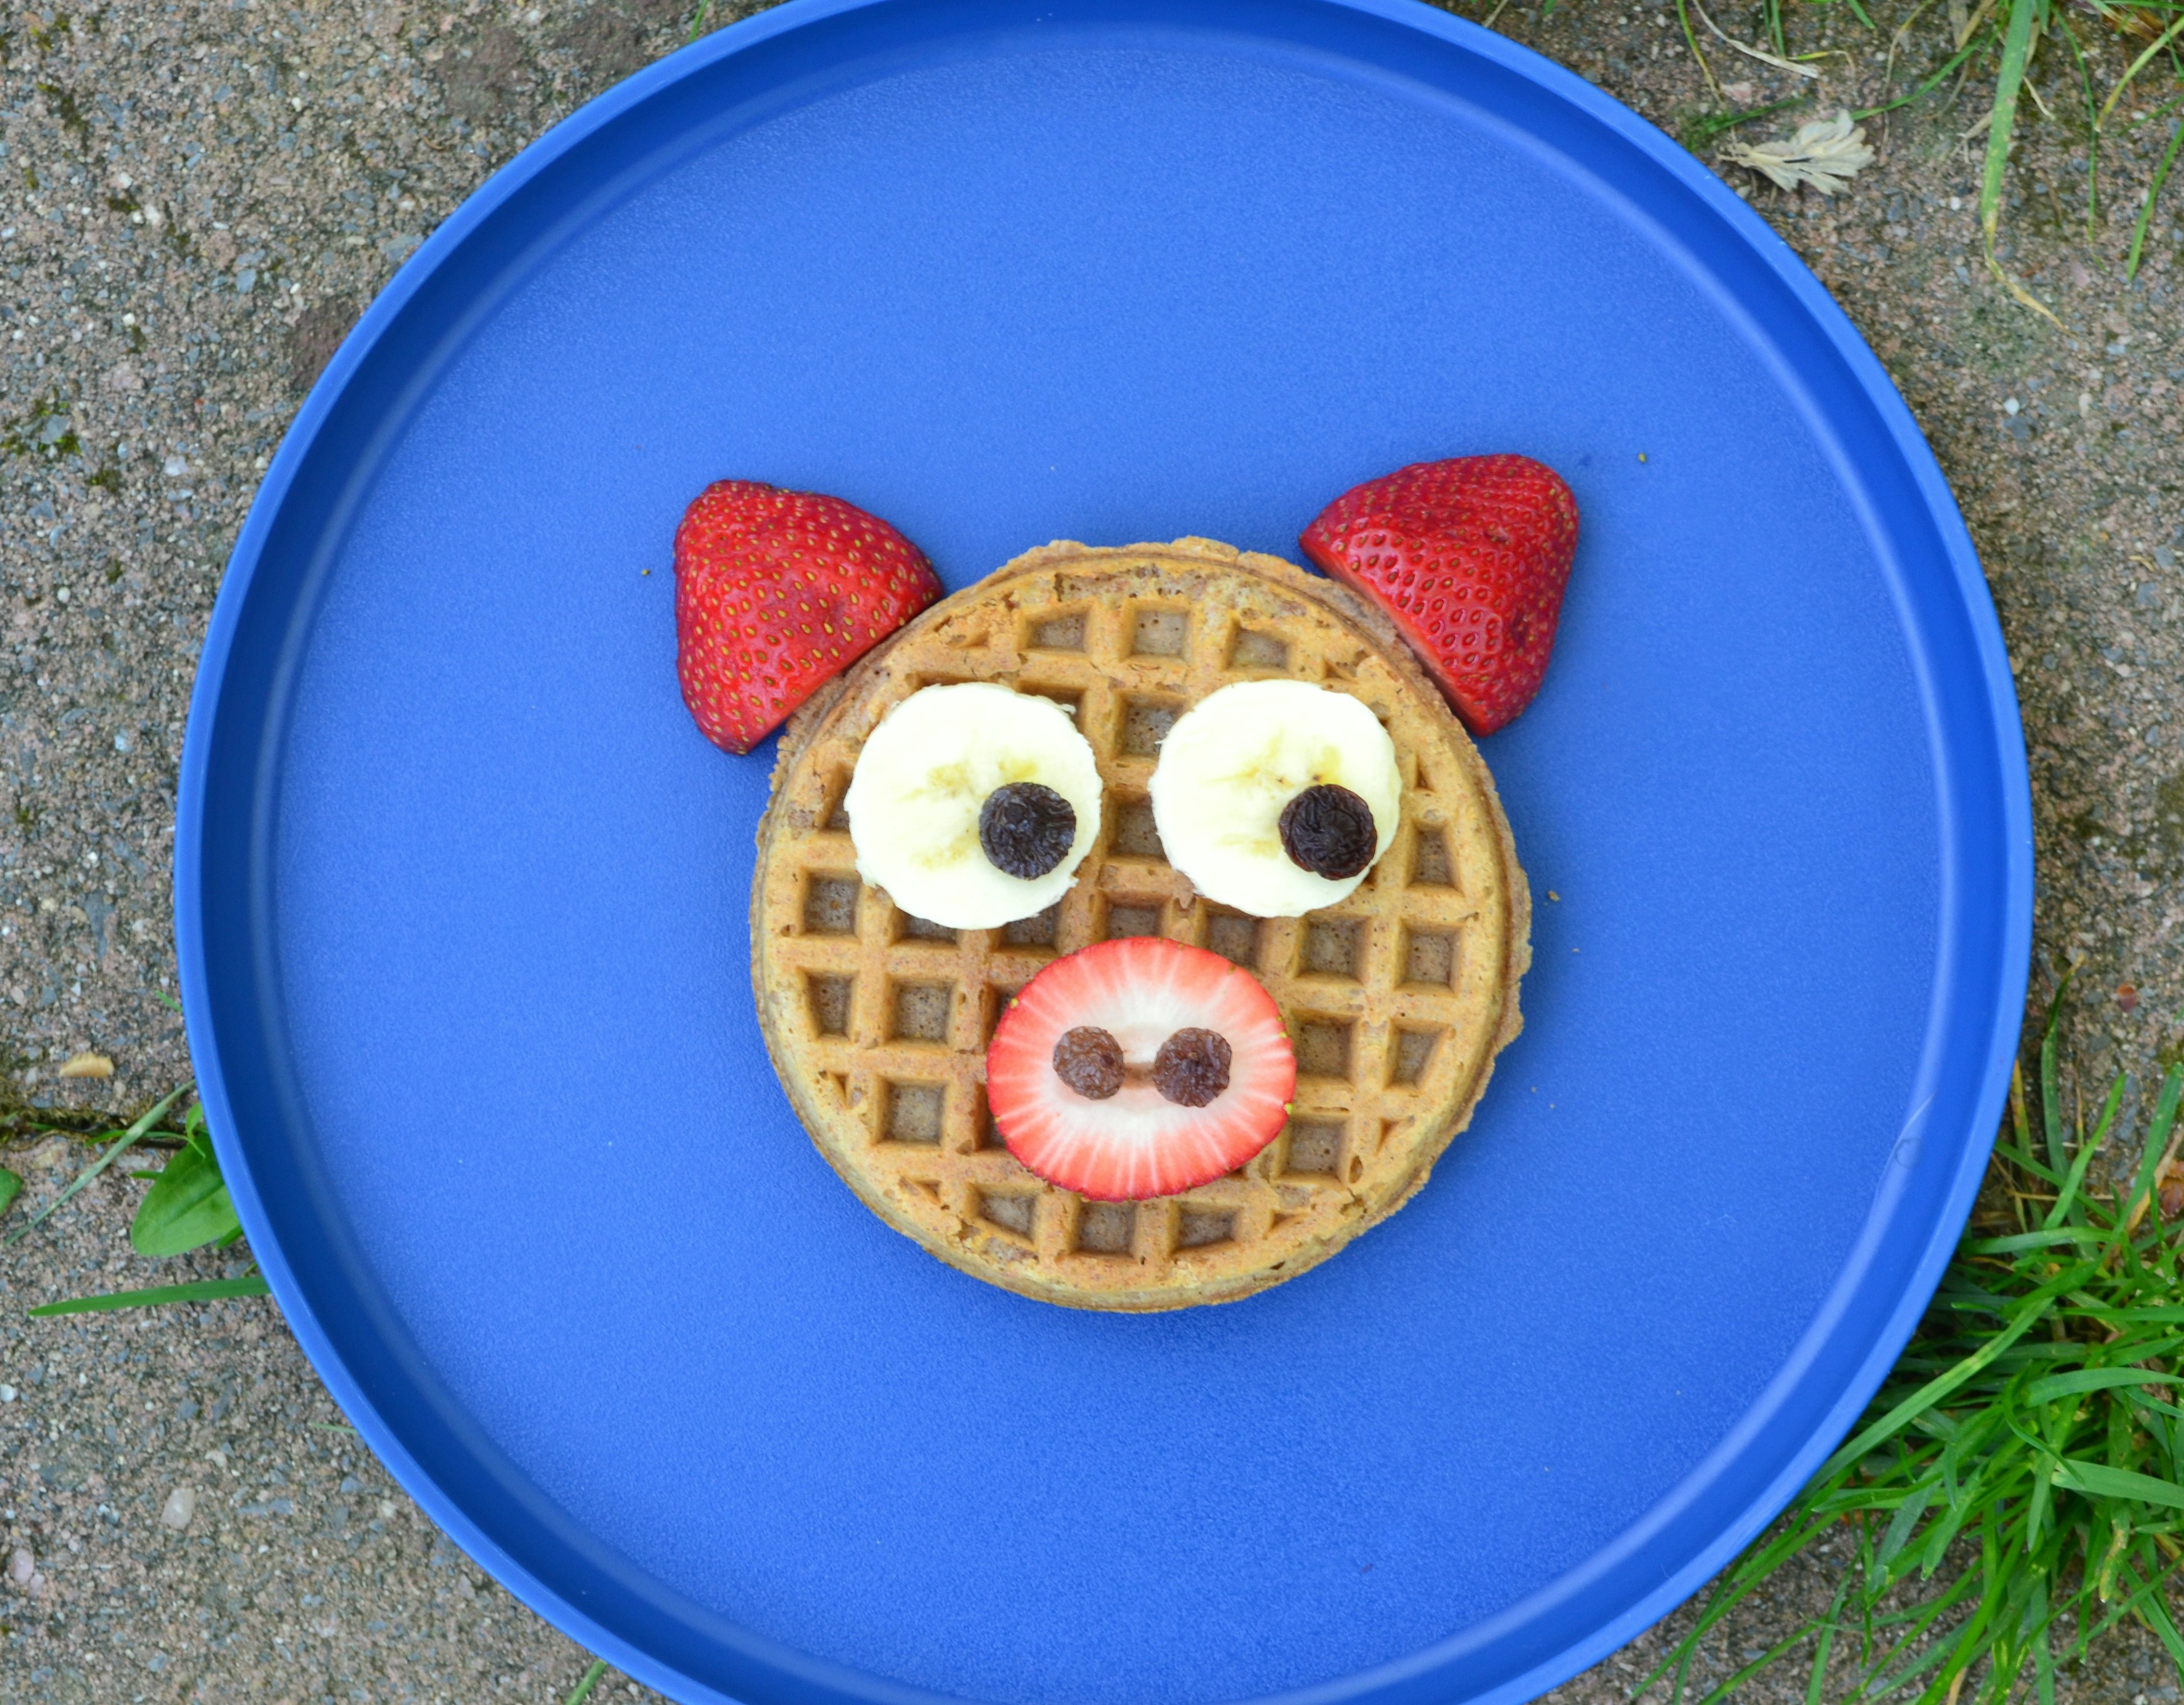 A kids waffle made to look like a pig using bananas and strawberries on a blue plate